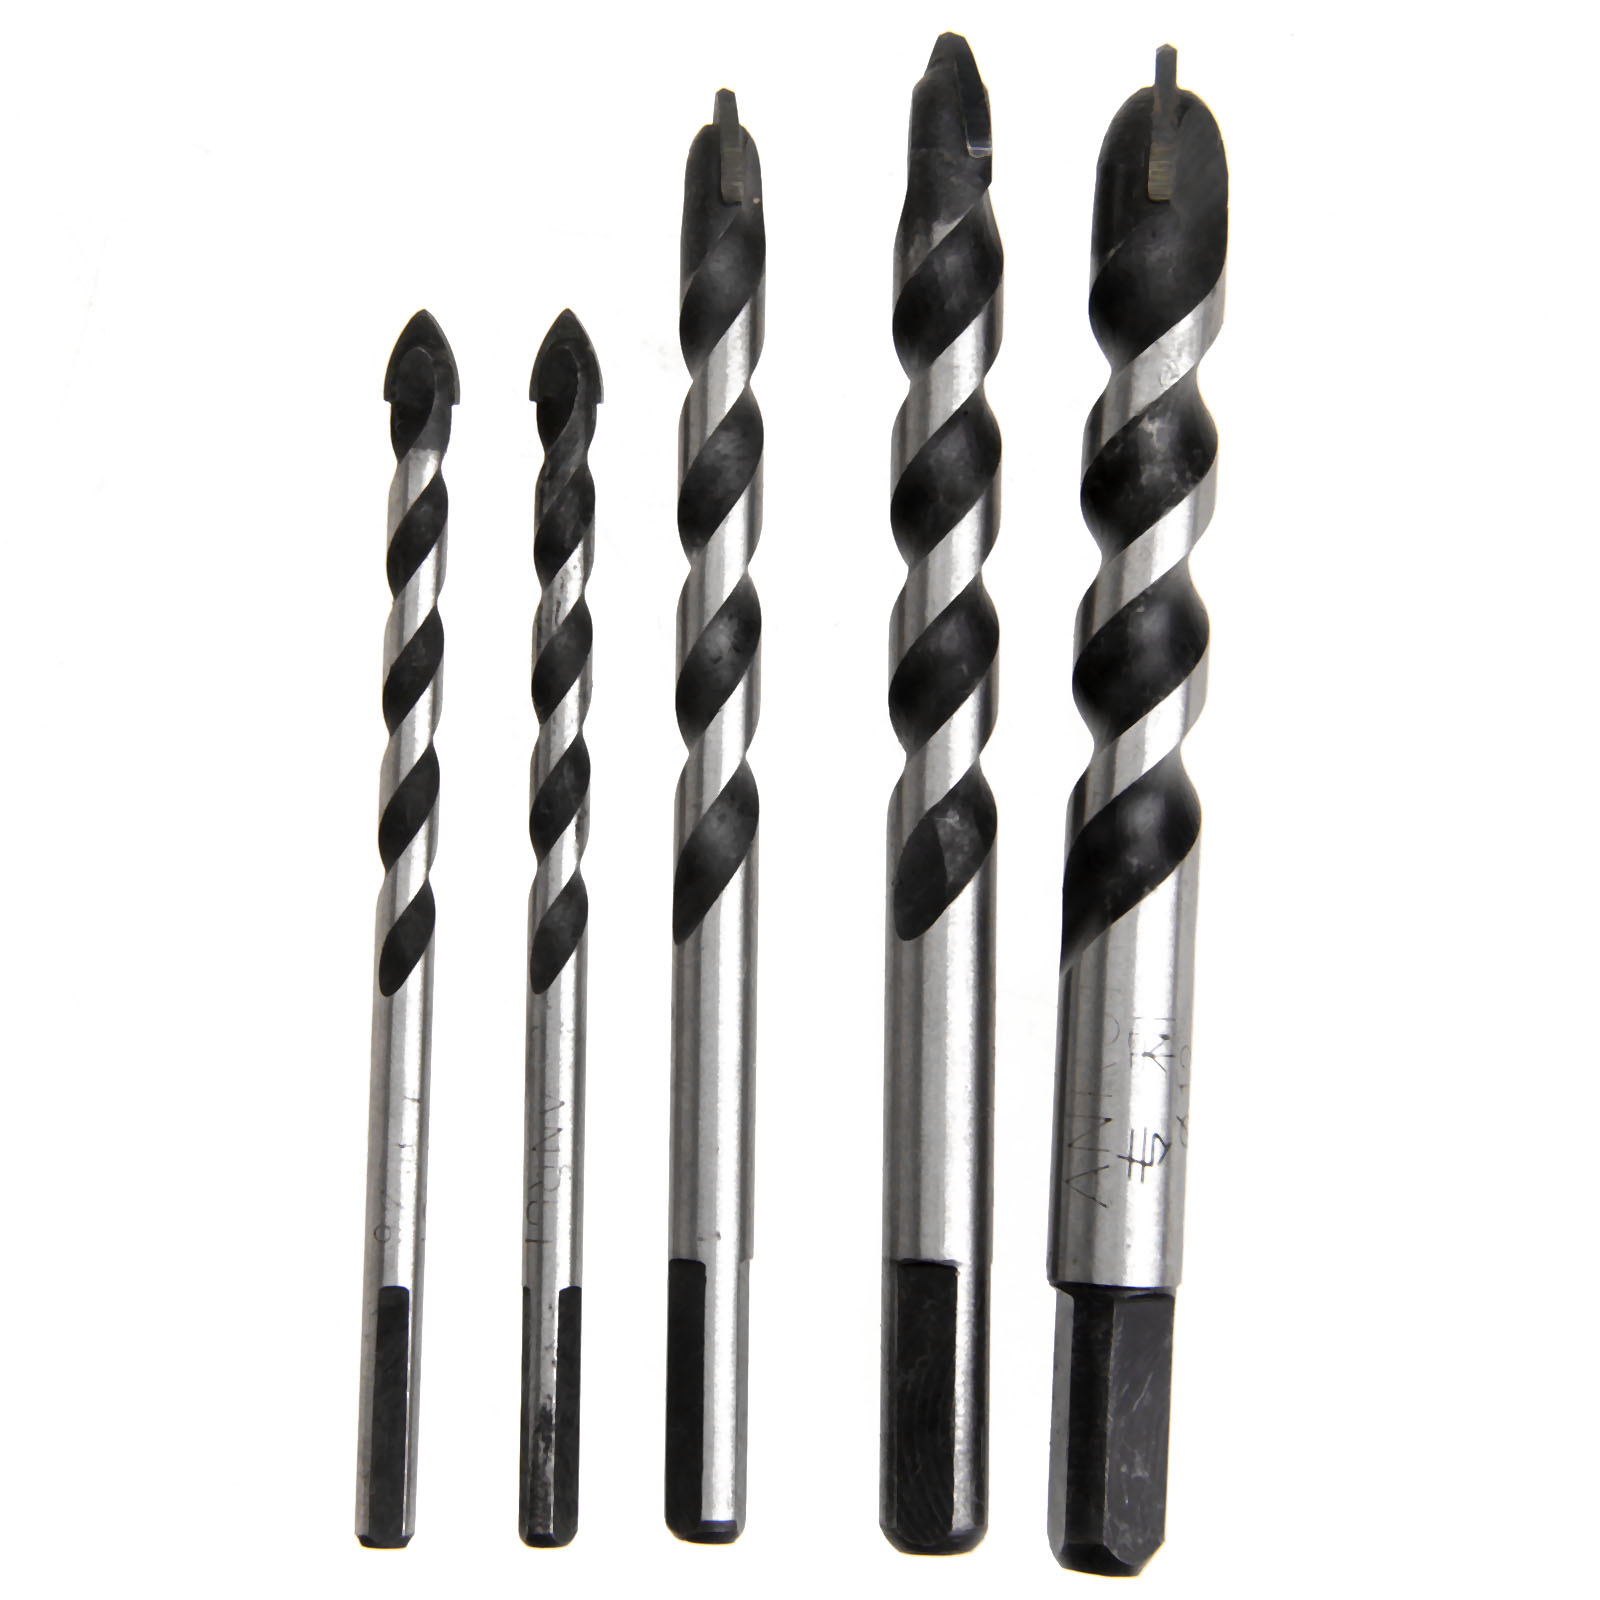 5Pcs Drywall Tungsten Carbide Drill Bit Set for Wood Ceramic Tile ...